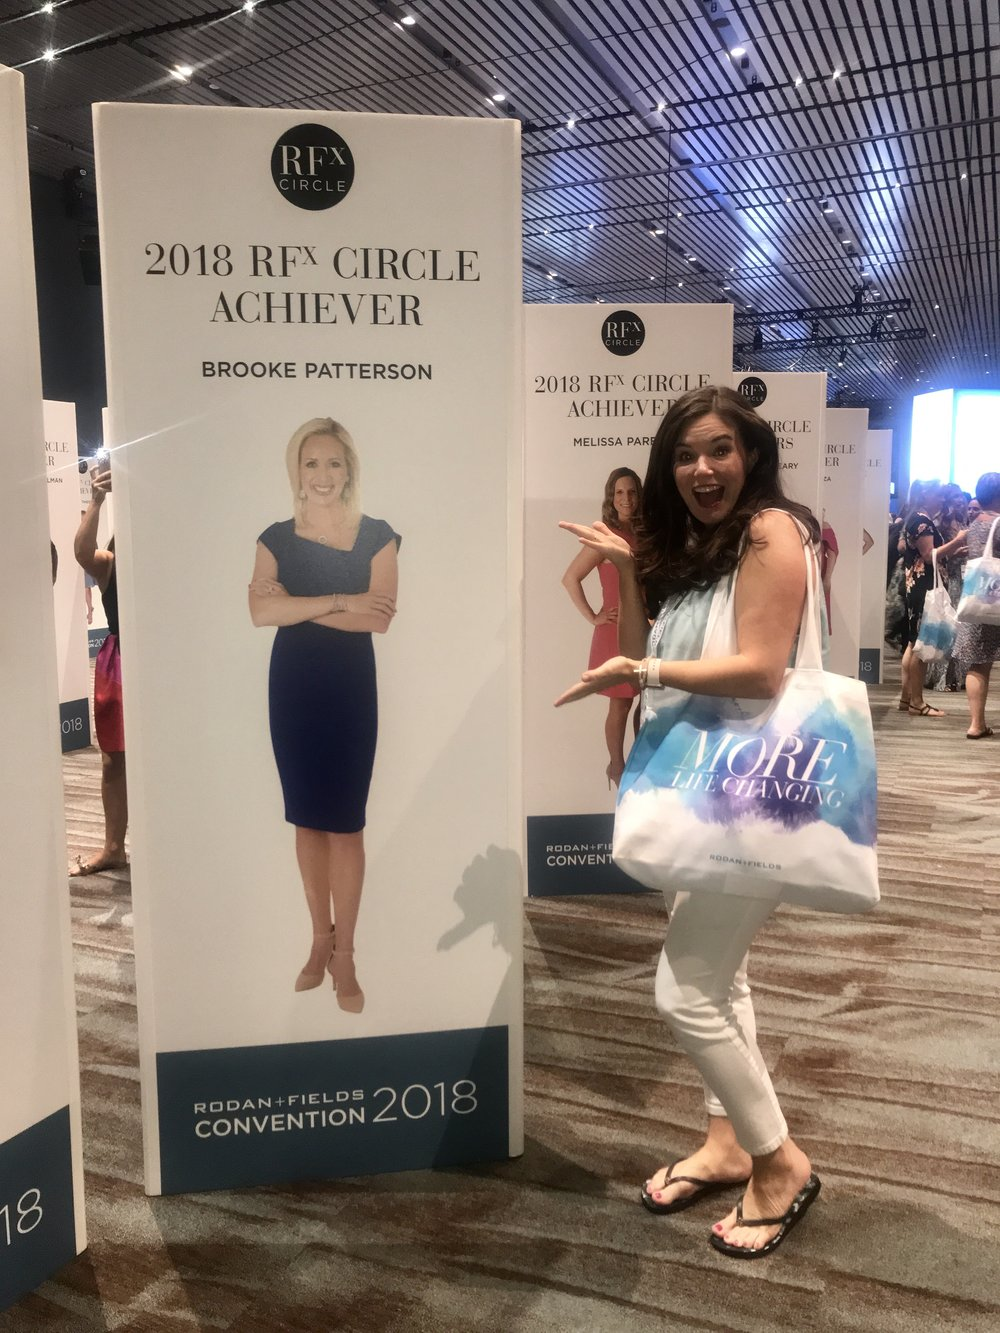 Rodan + Fields Convention - RFx Circle Achiever Brooke Patterson and photographer Kassady Gibson